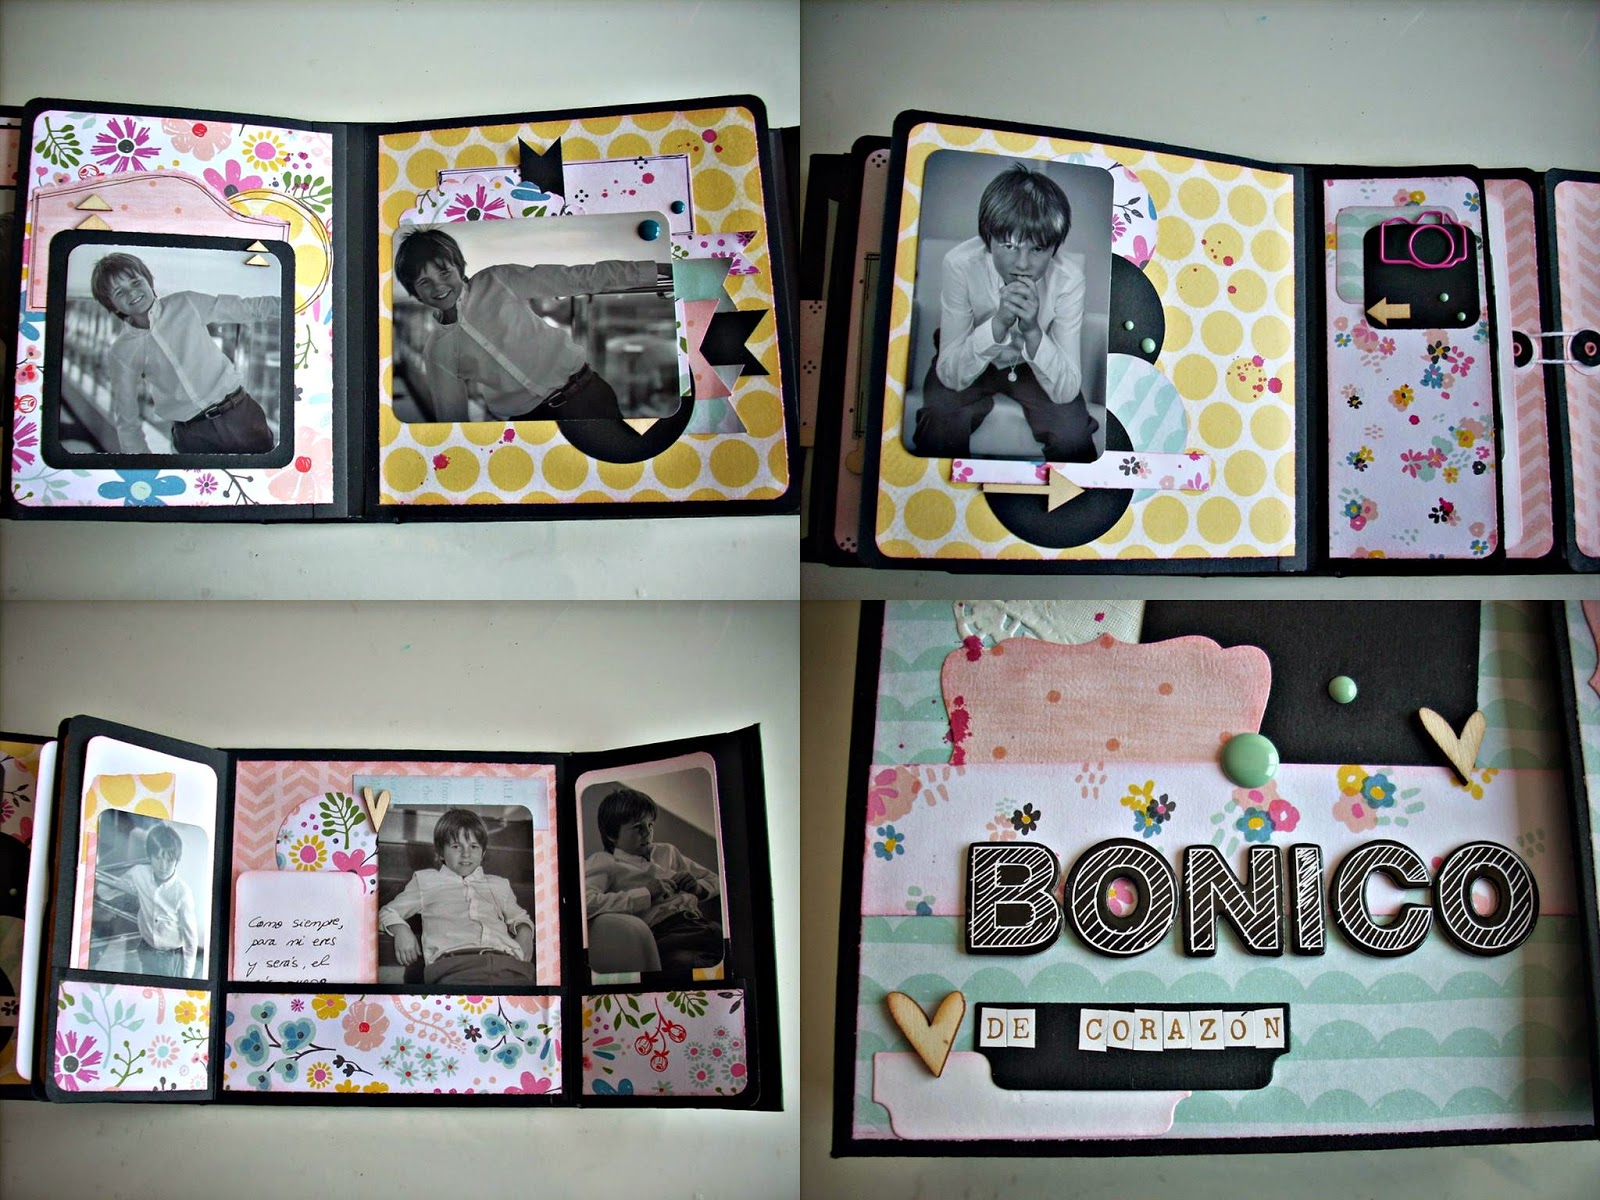 Decorar Album Scrap El Blog De Escrapearte Tutorial Encuadernación De Espina